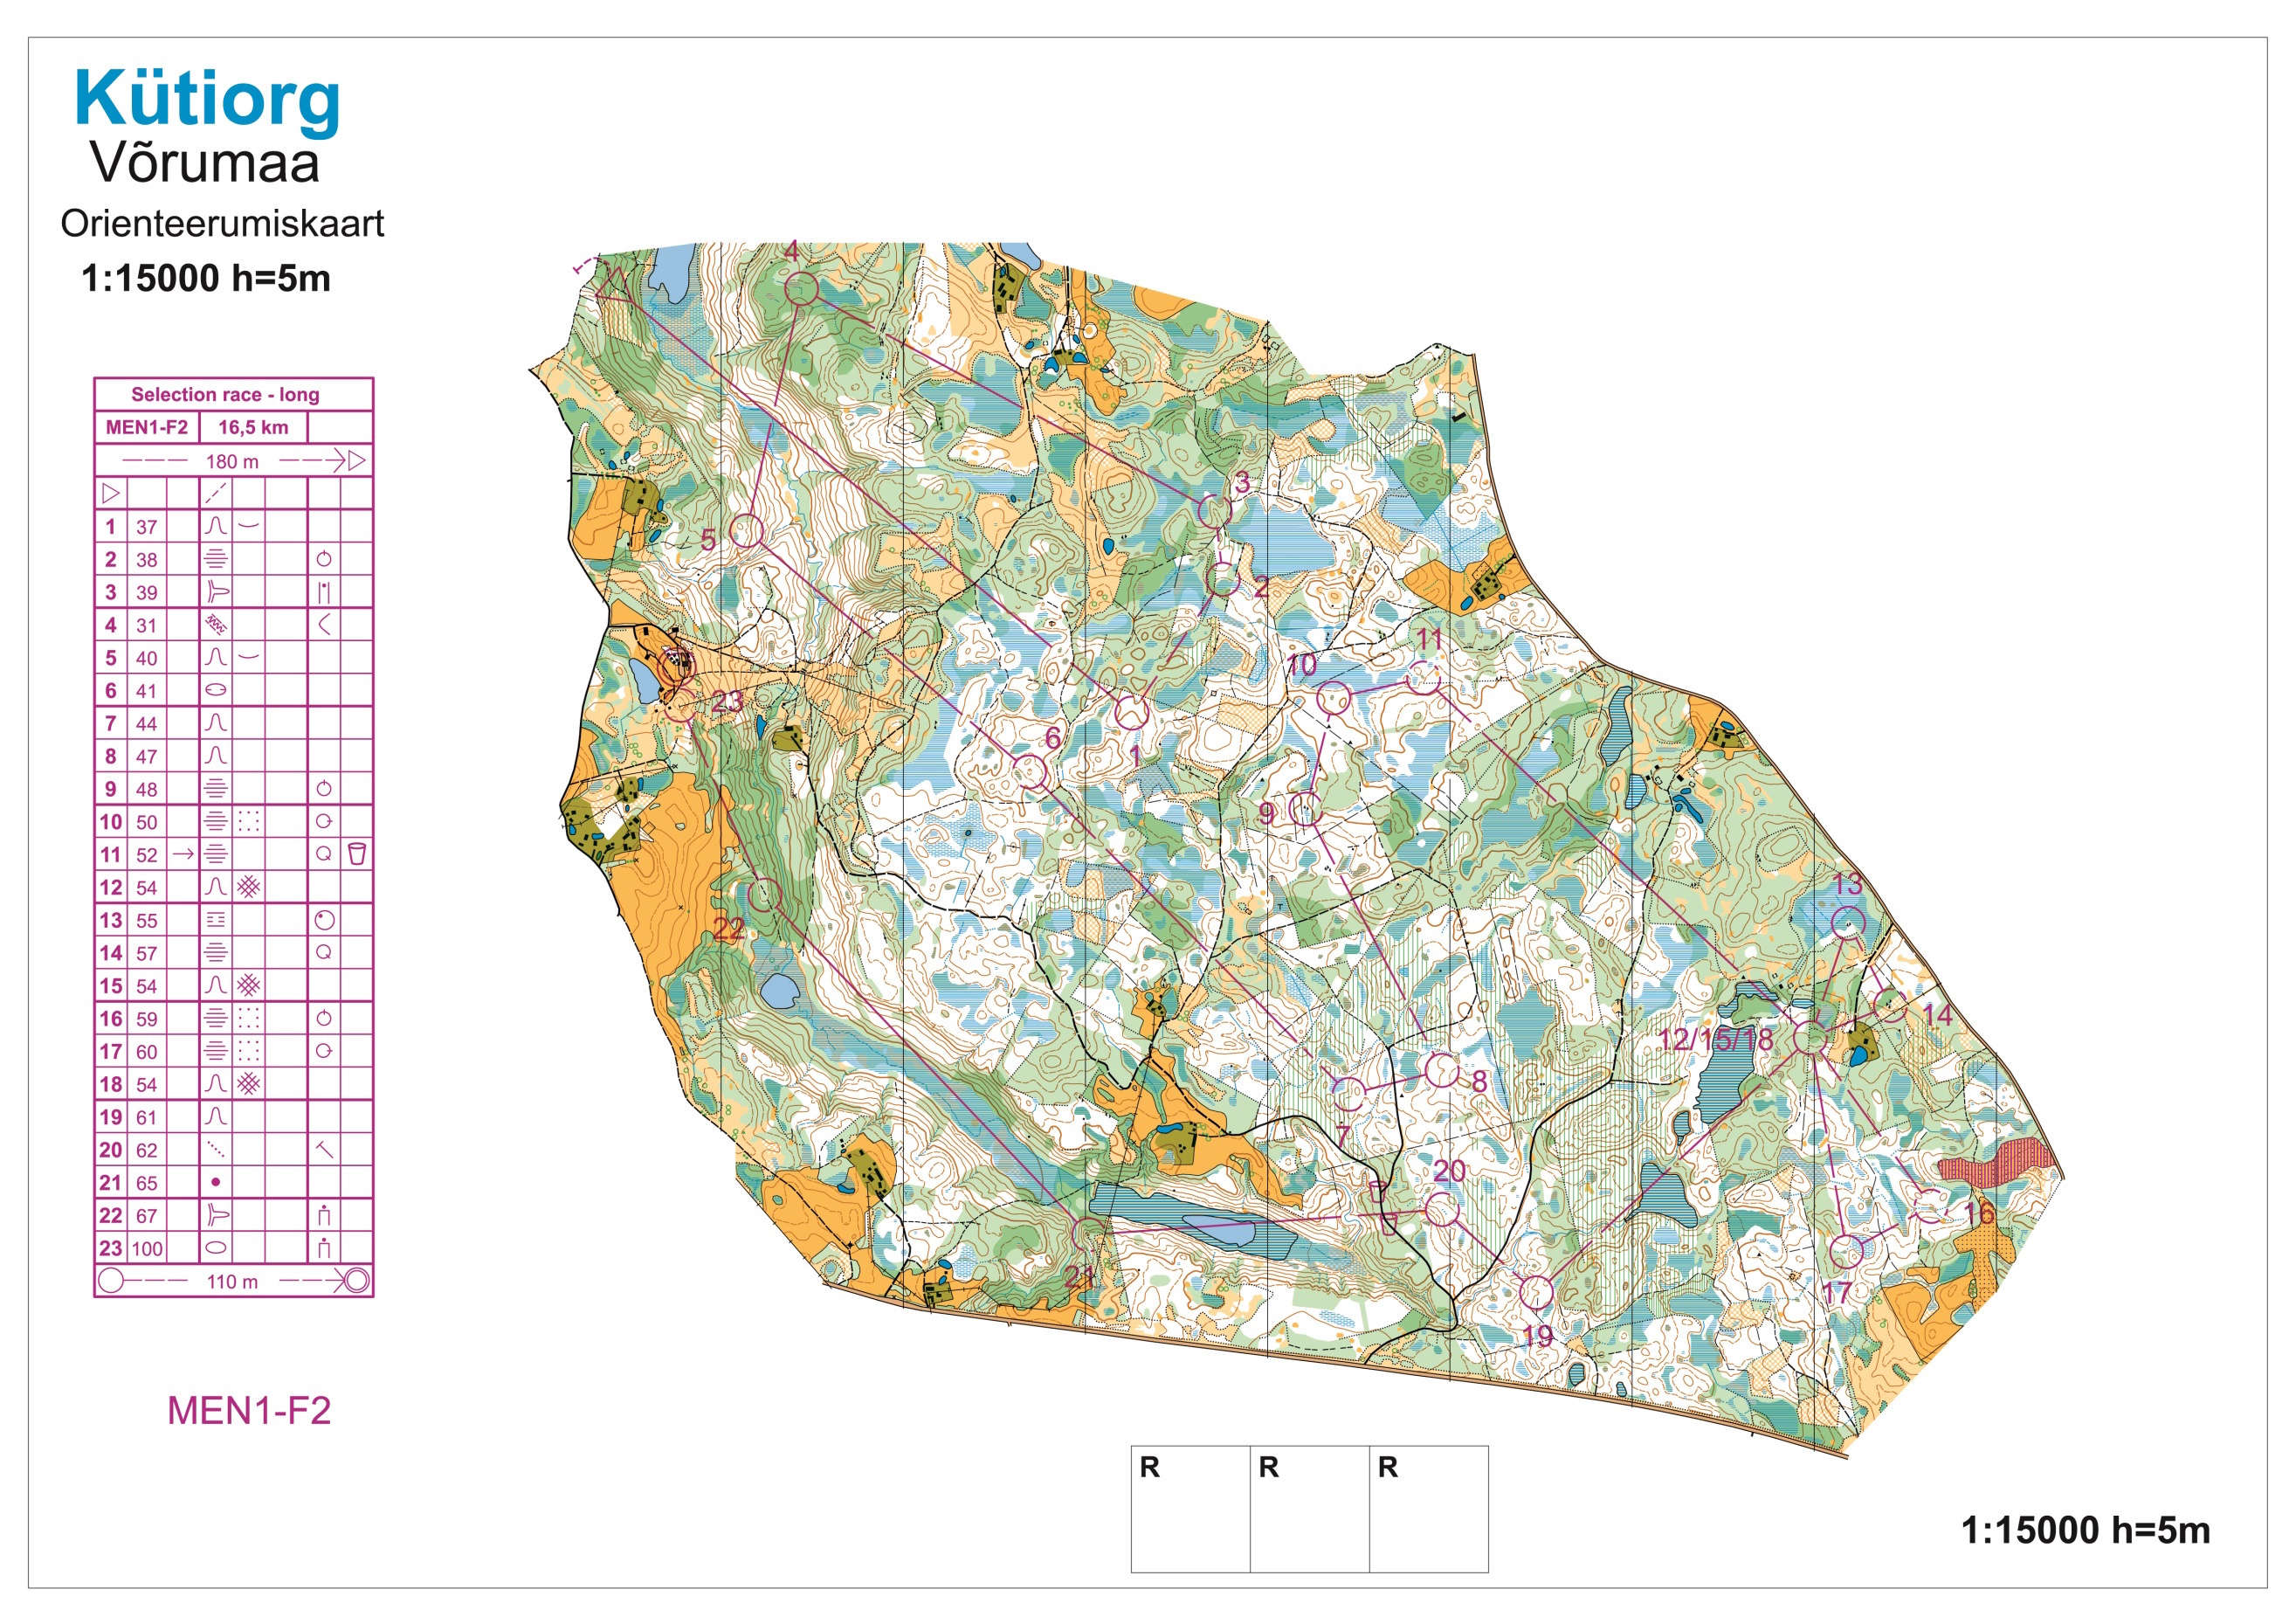 WOC Selection 2017 - Long (14/05/2017)